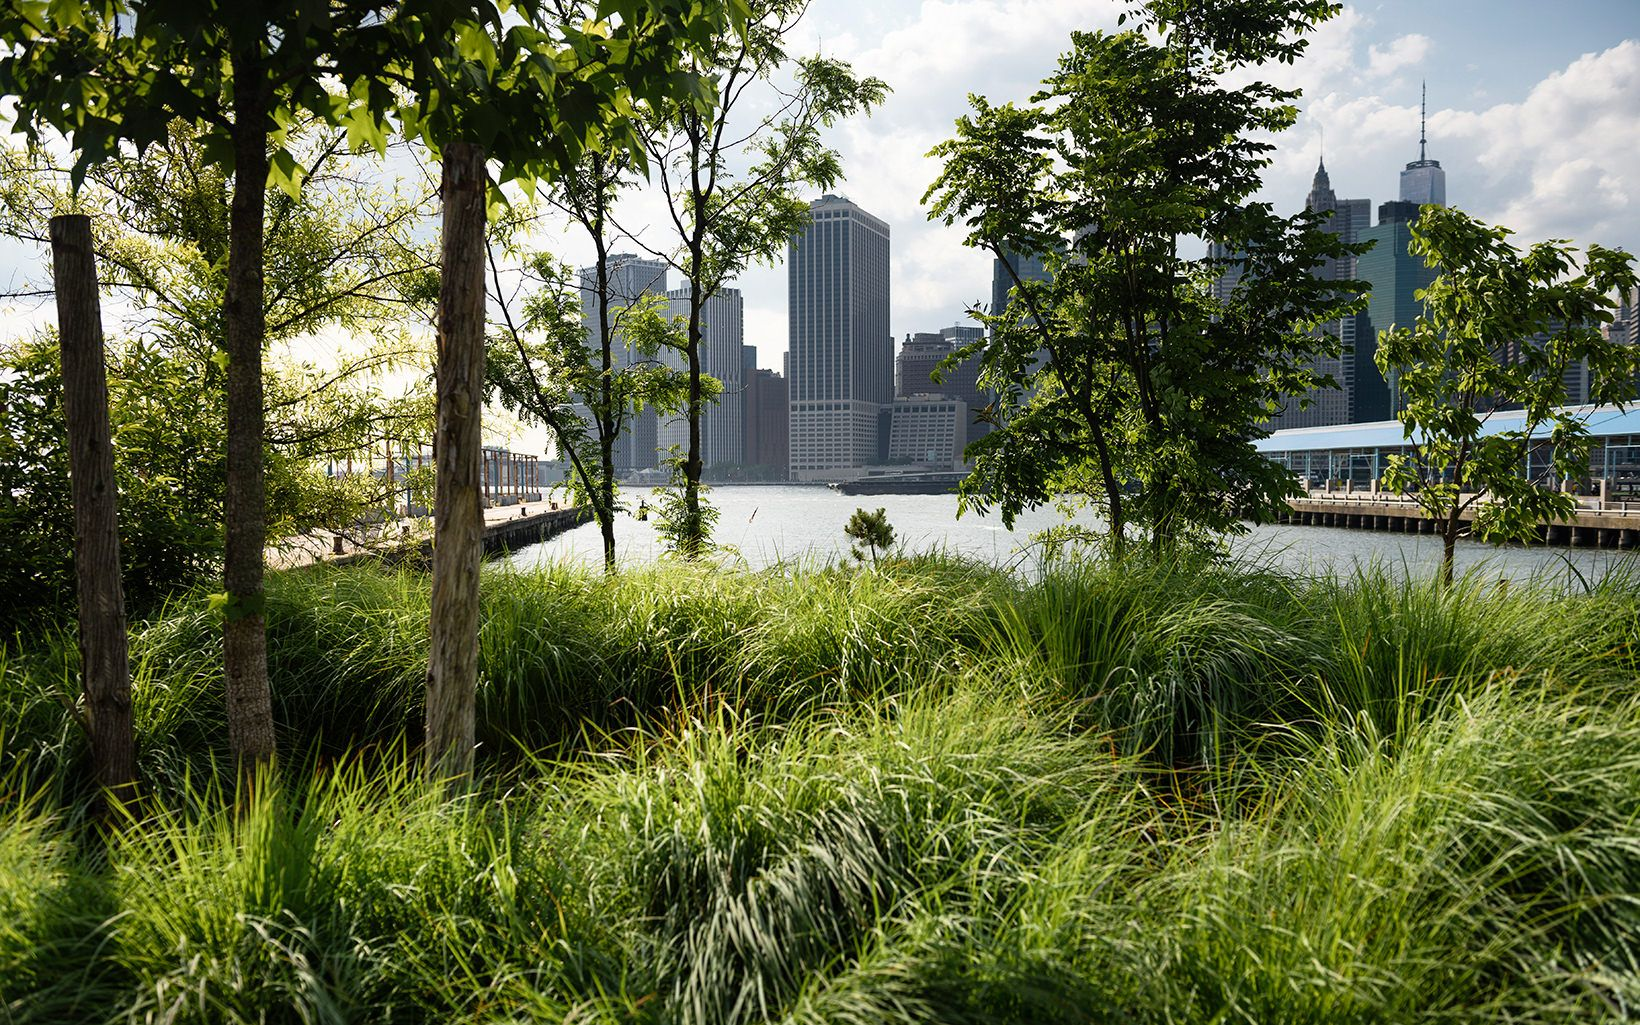 Brooklyn Bridge Park looking towards Manhattan, New York